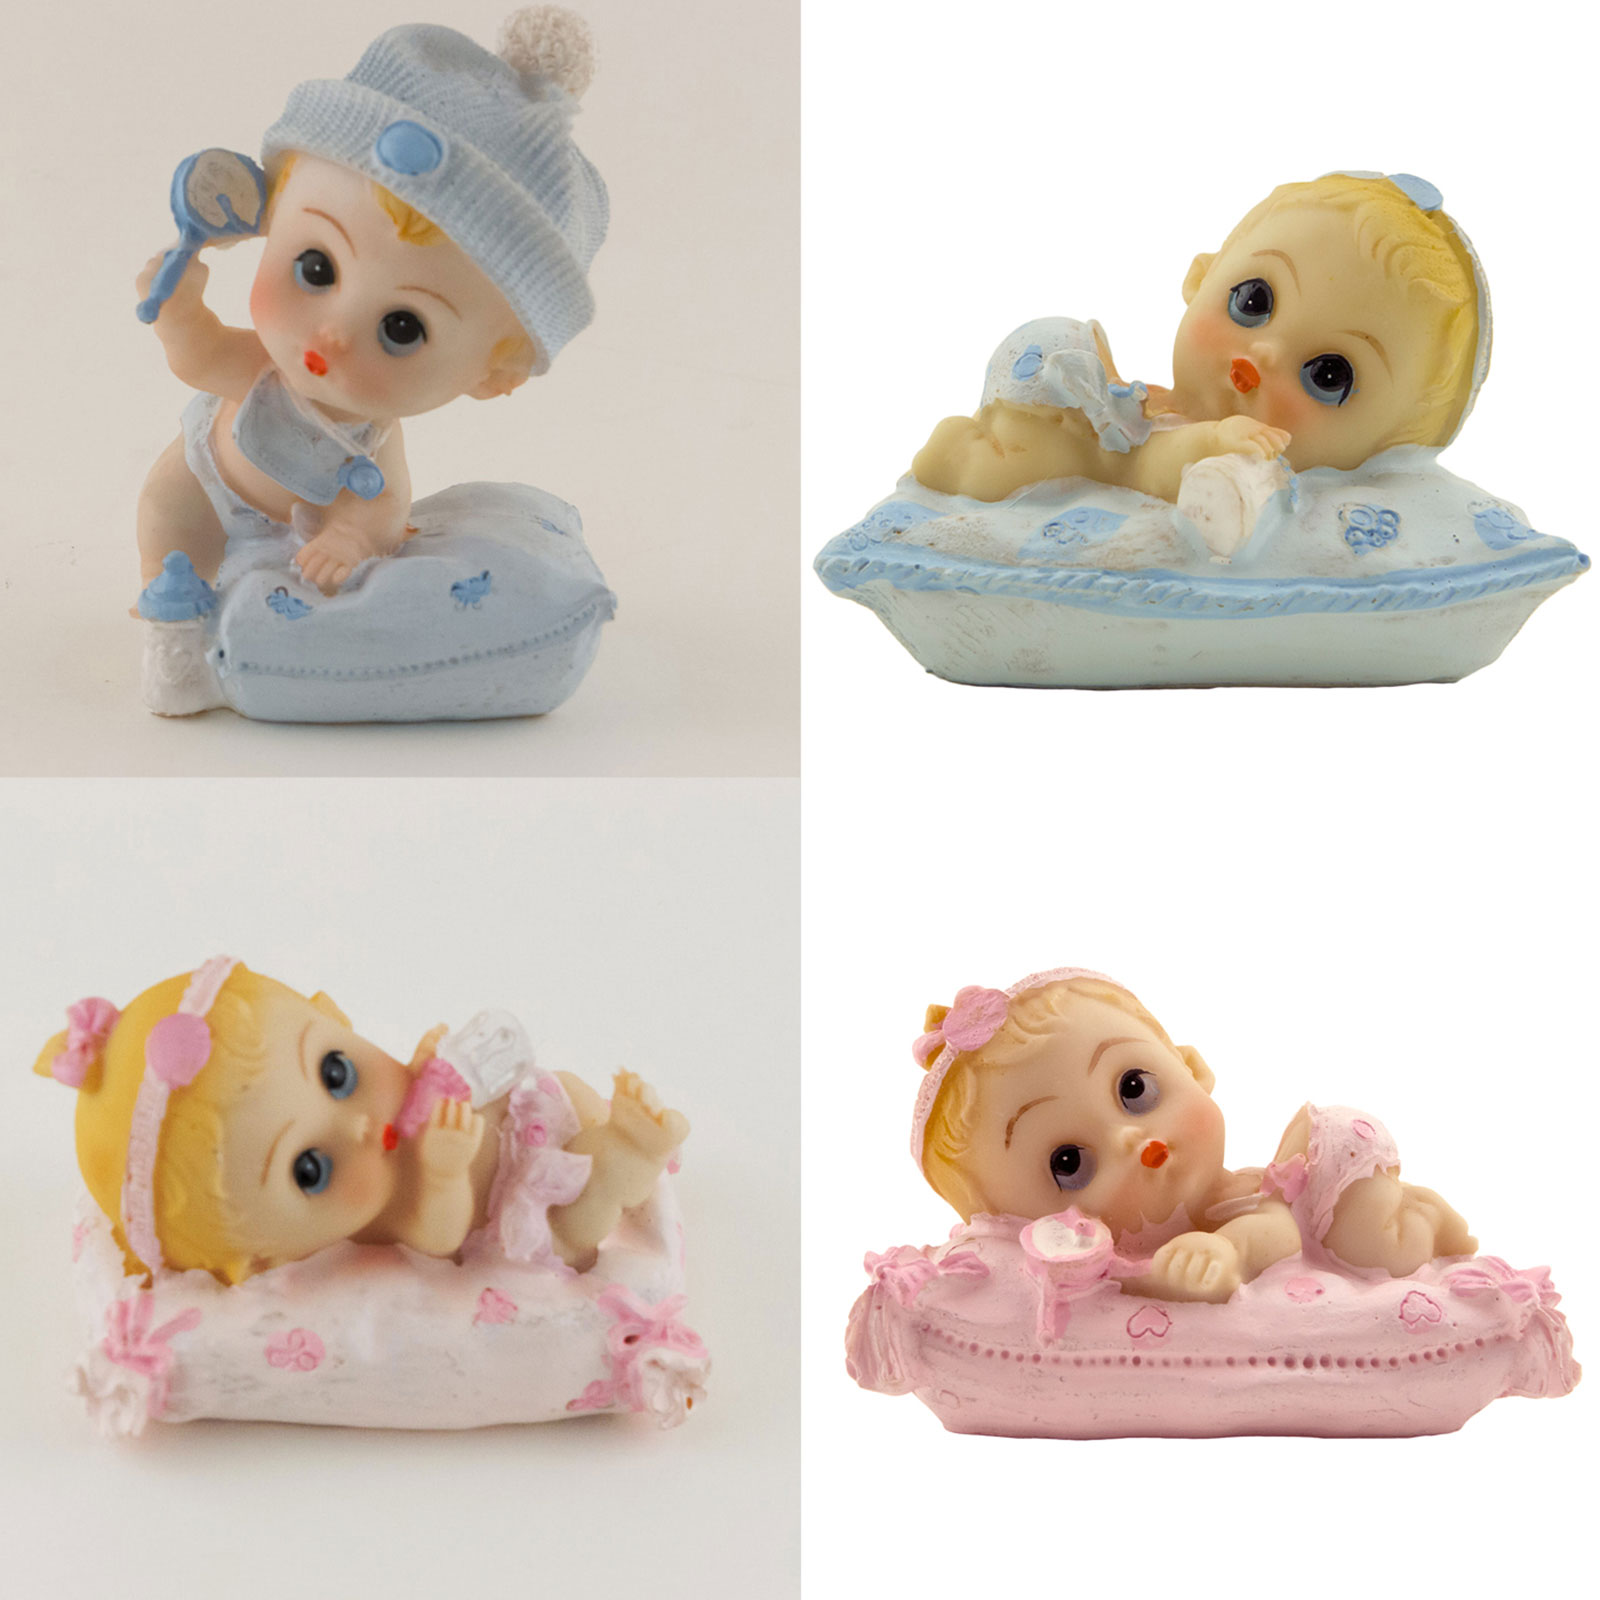 baby shower girl / boy with pillow keepsake figurine decoration, Baby shower